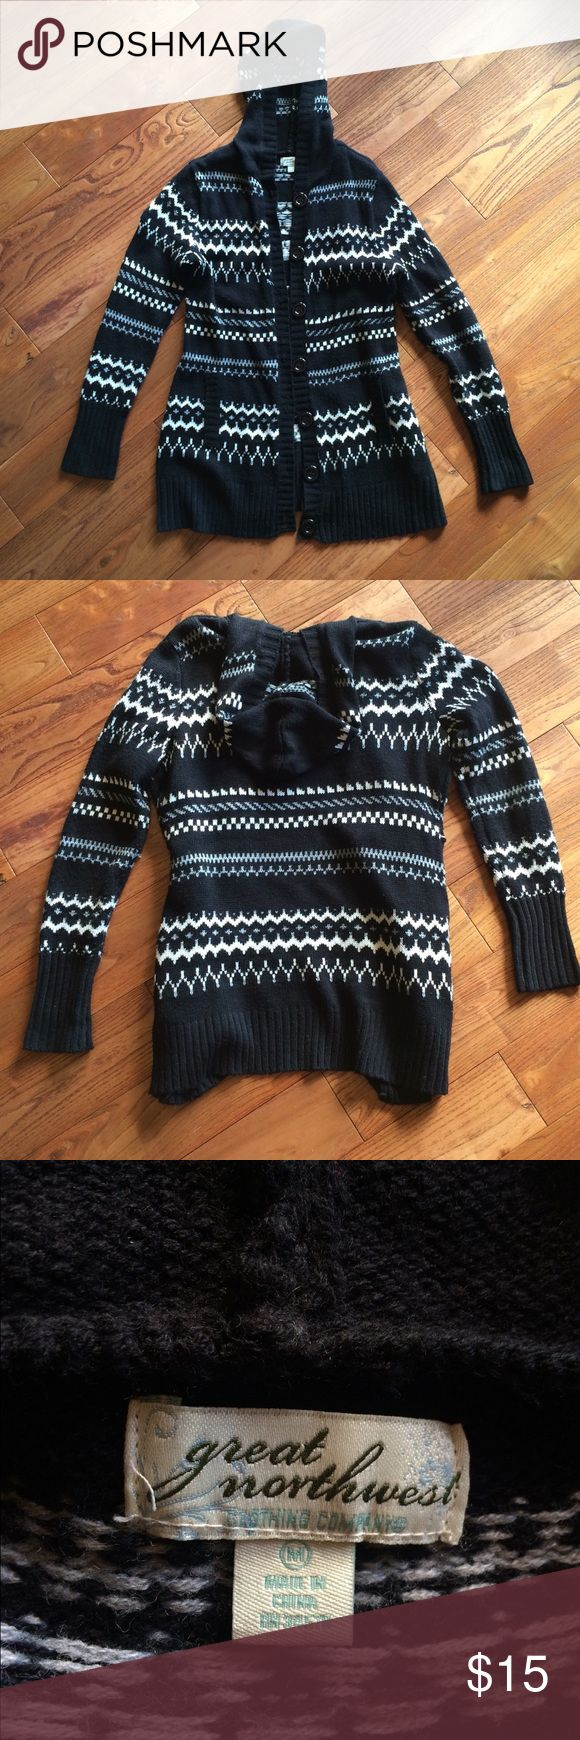 Black & White Button up sweater cardigan W/hood M Black & White Button up sweater cardigan W/hood M. Looks great with a pair of leggings a boots. Used condition. Great northwest Sweaters Cardigans